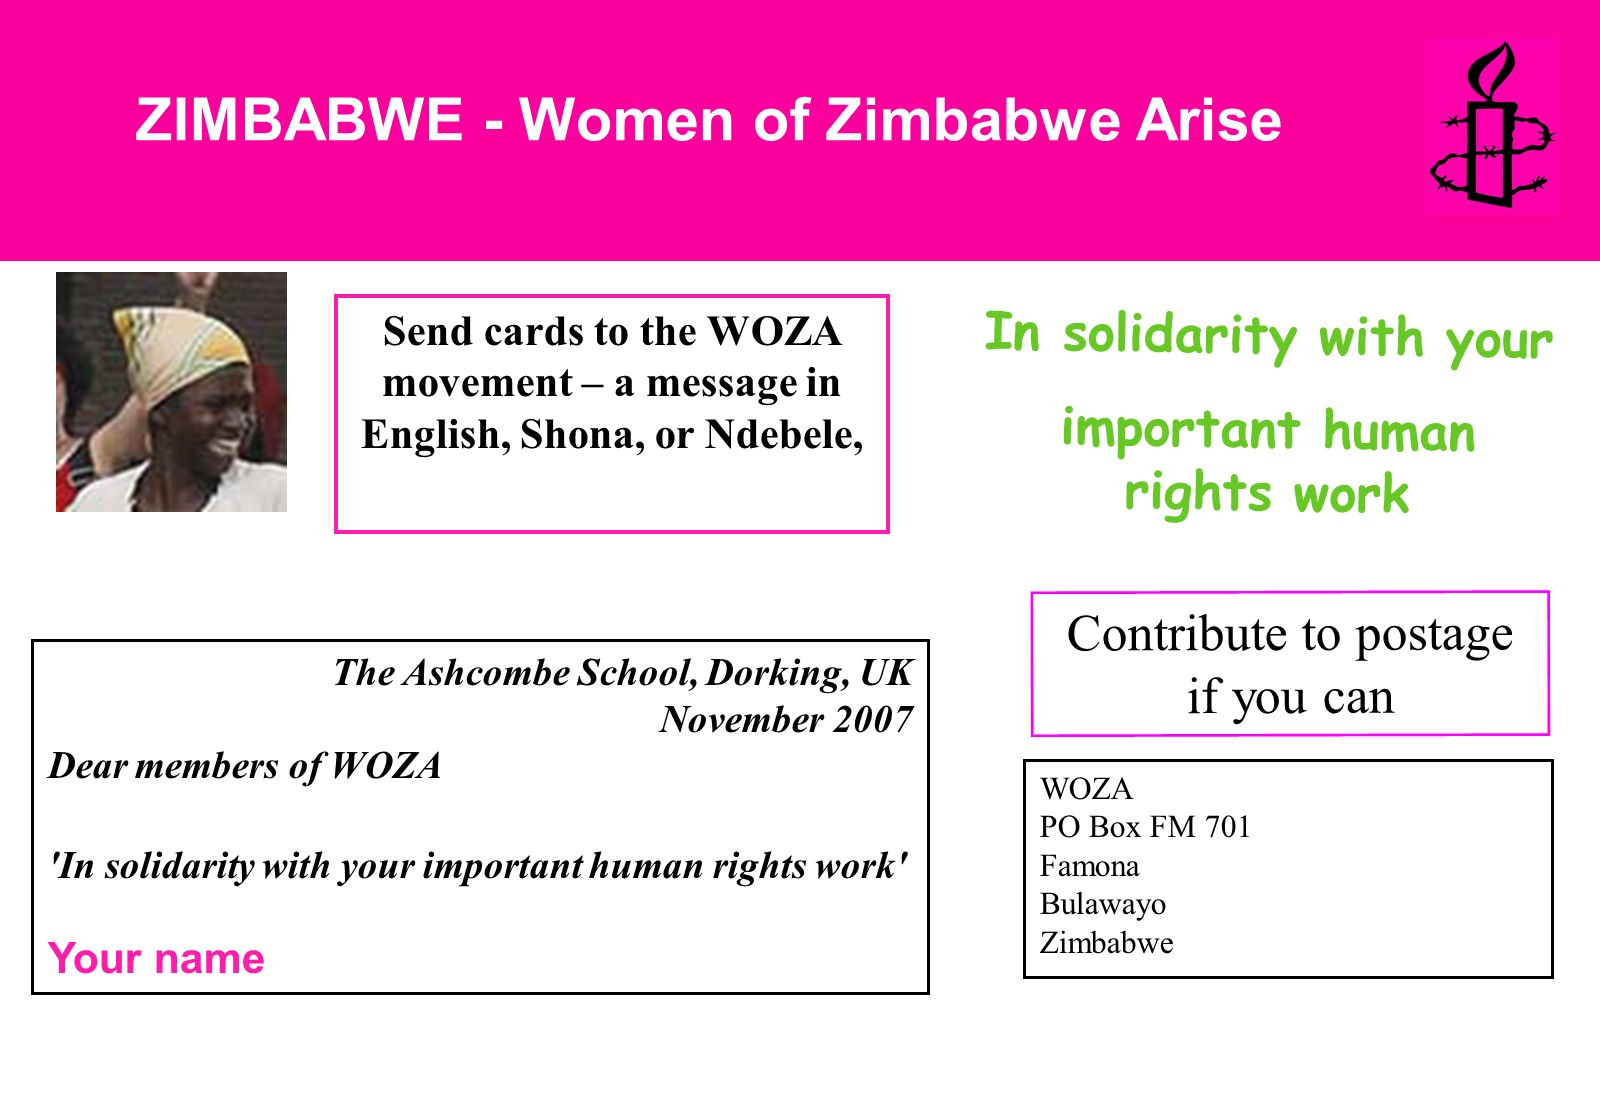 ZIMBABWE - Women of Zimbabwe Arise Send cards to the WOZA movement – a message in English, Shona, or Ndebele, The Ashcombe School, Dorking, UK Novembe